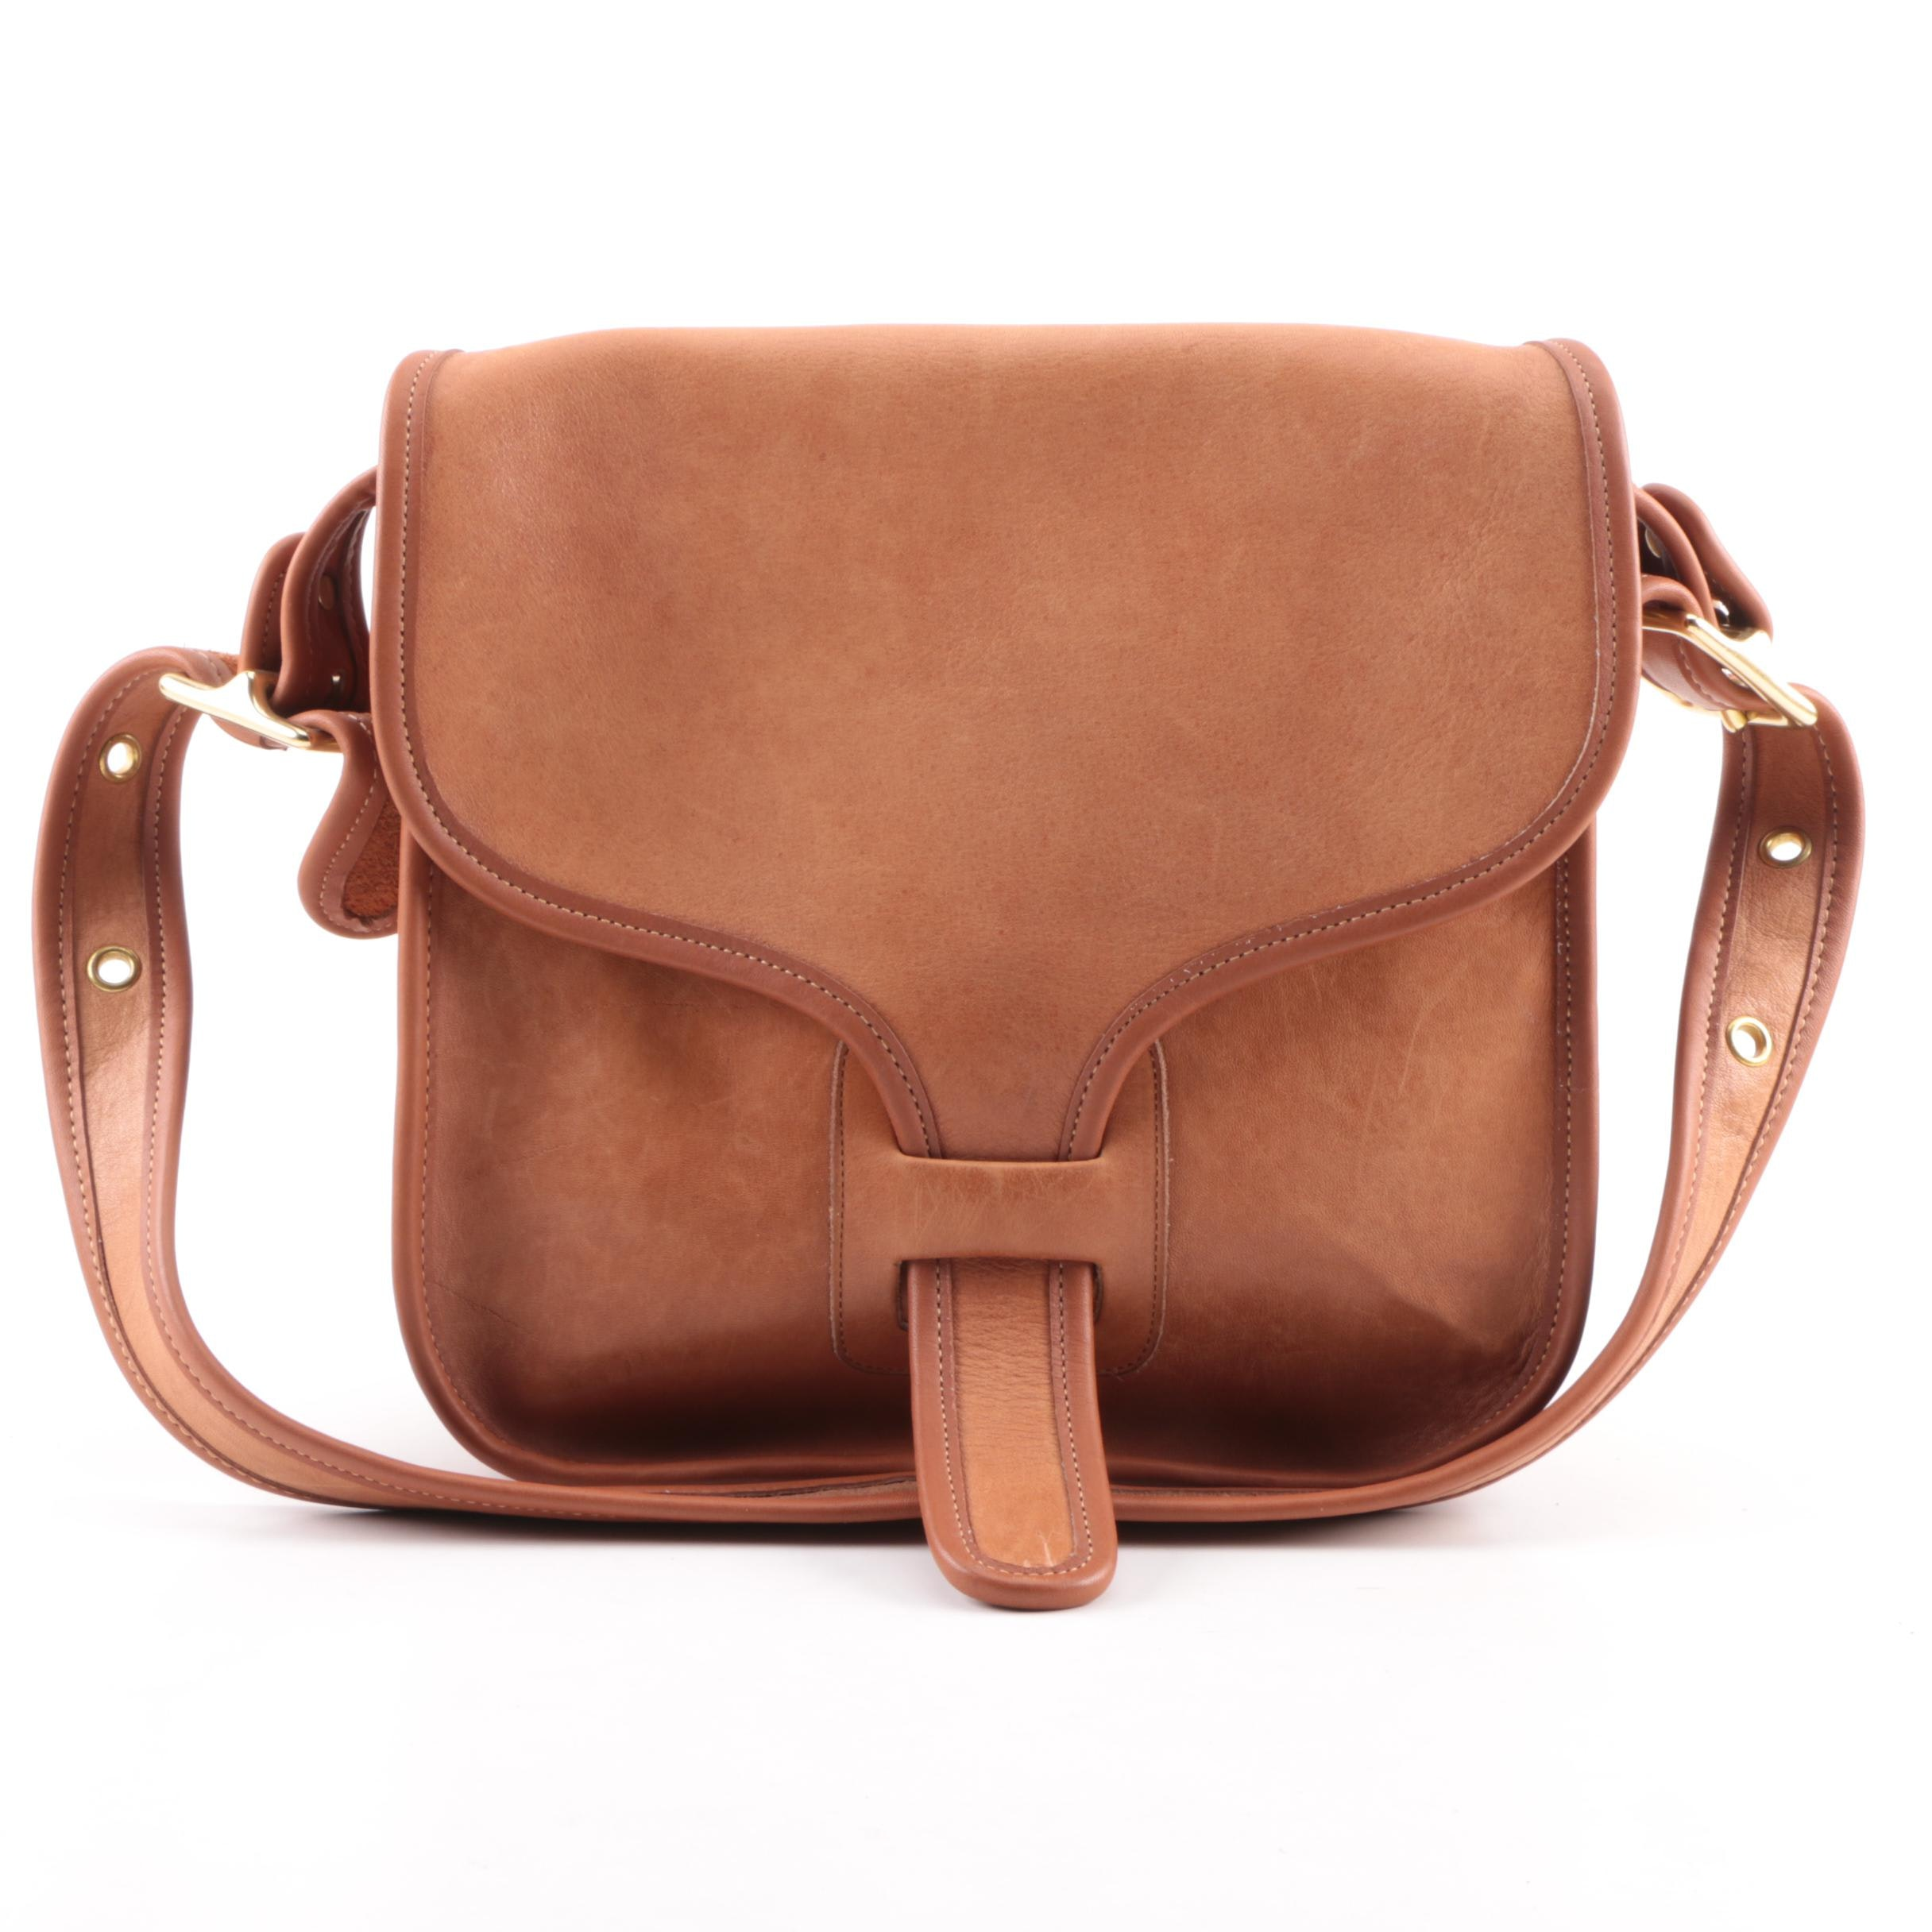 Circa 1970s Coach Rodarte Courier Brown Leather Bag